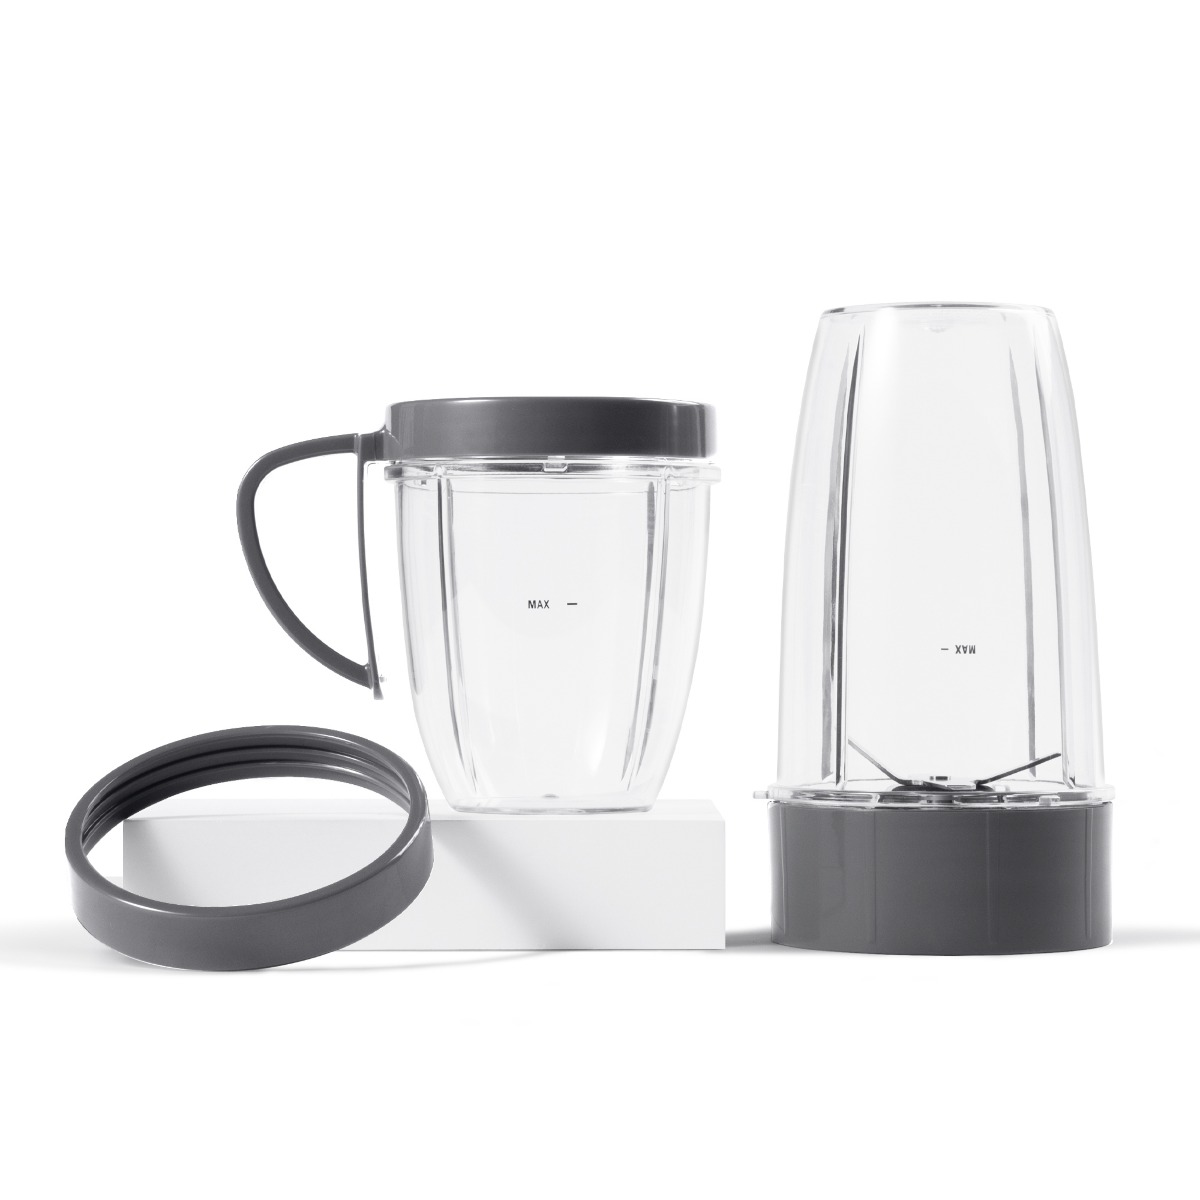 An image of NutriBullet Replacement Blade & Cup Kit